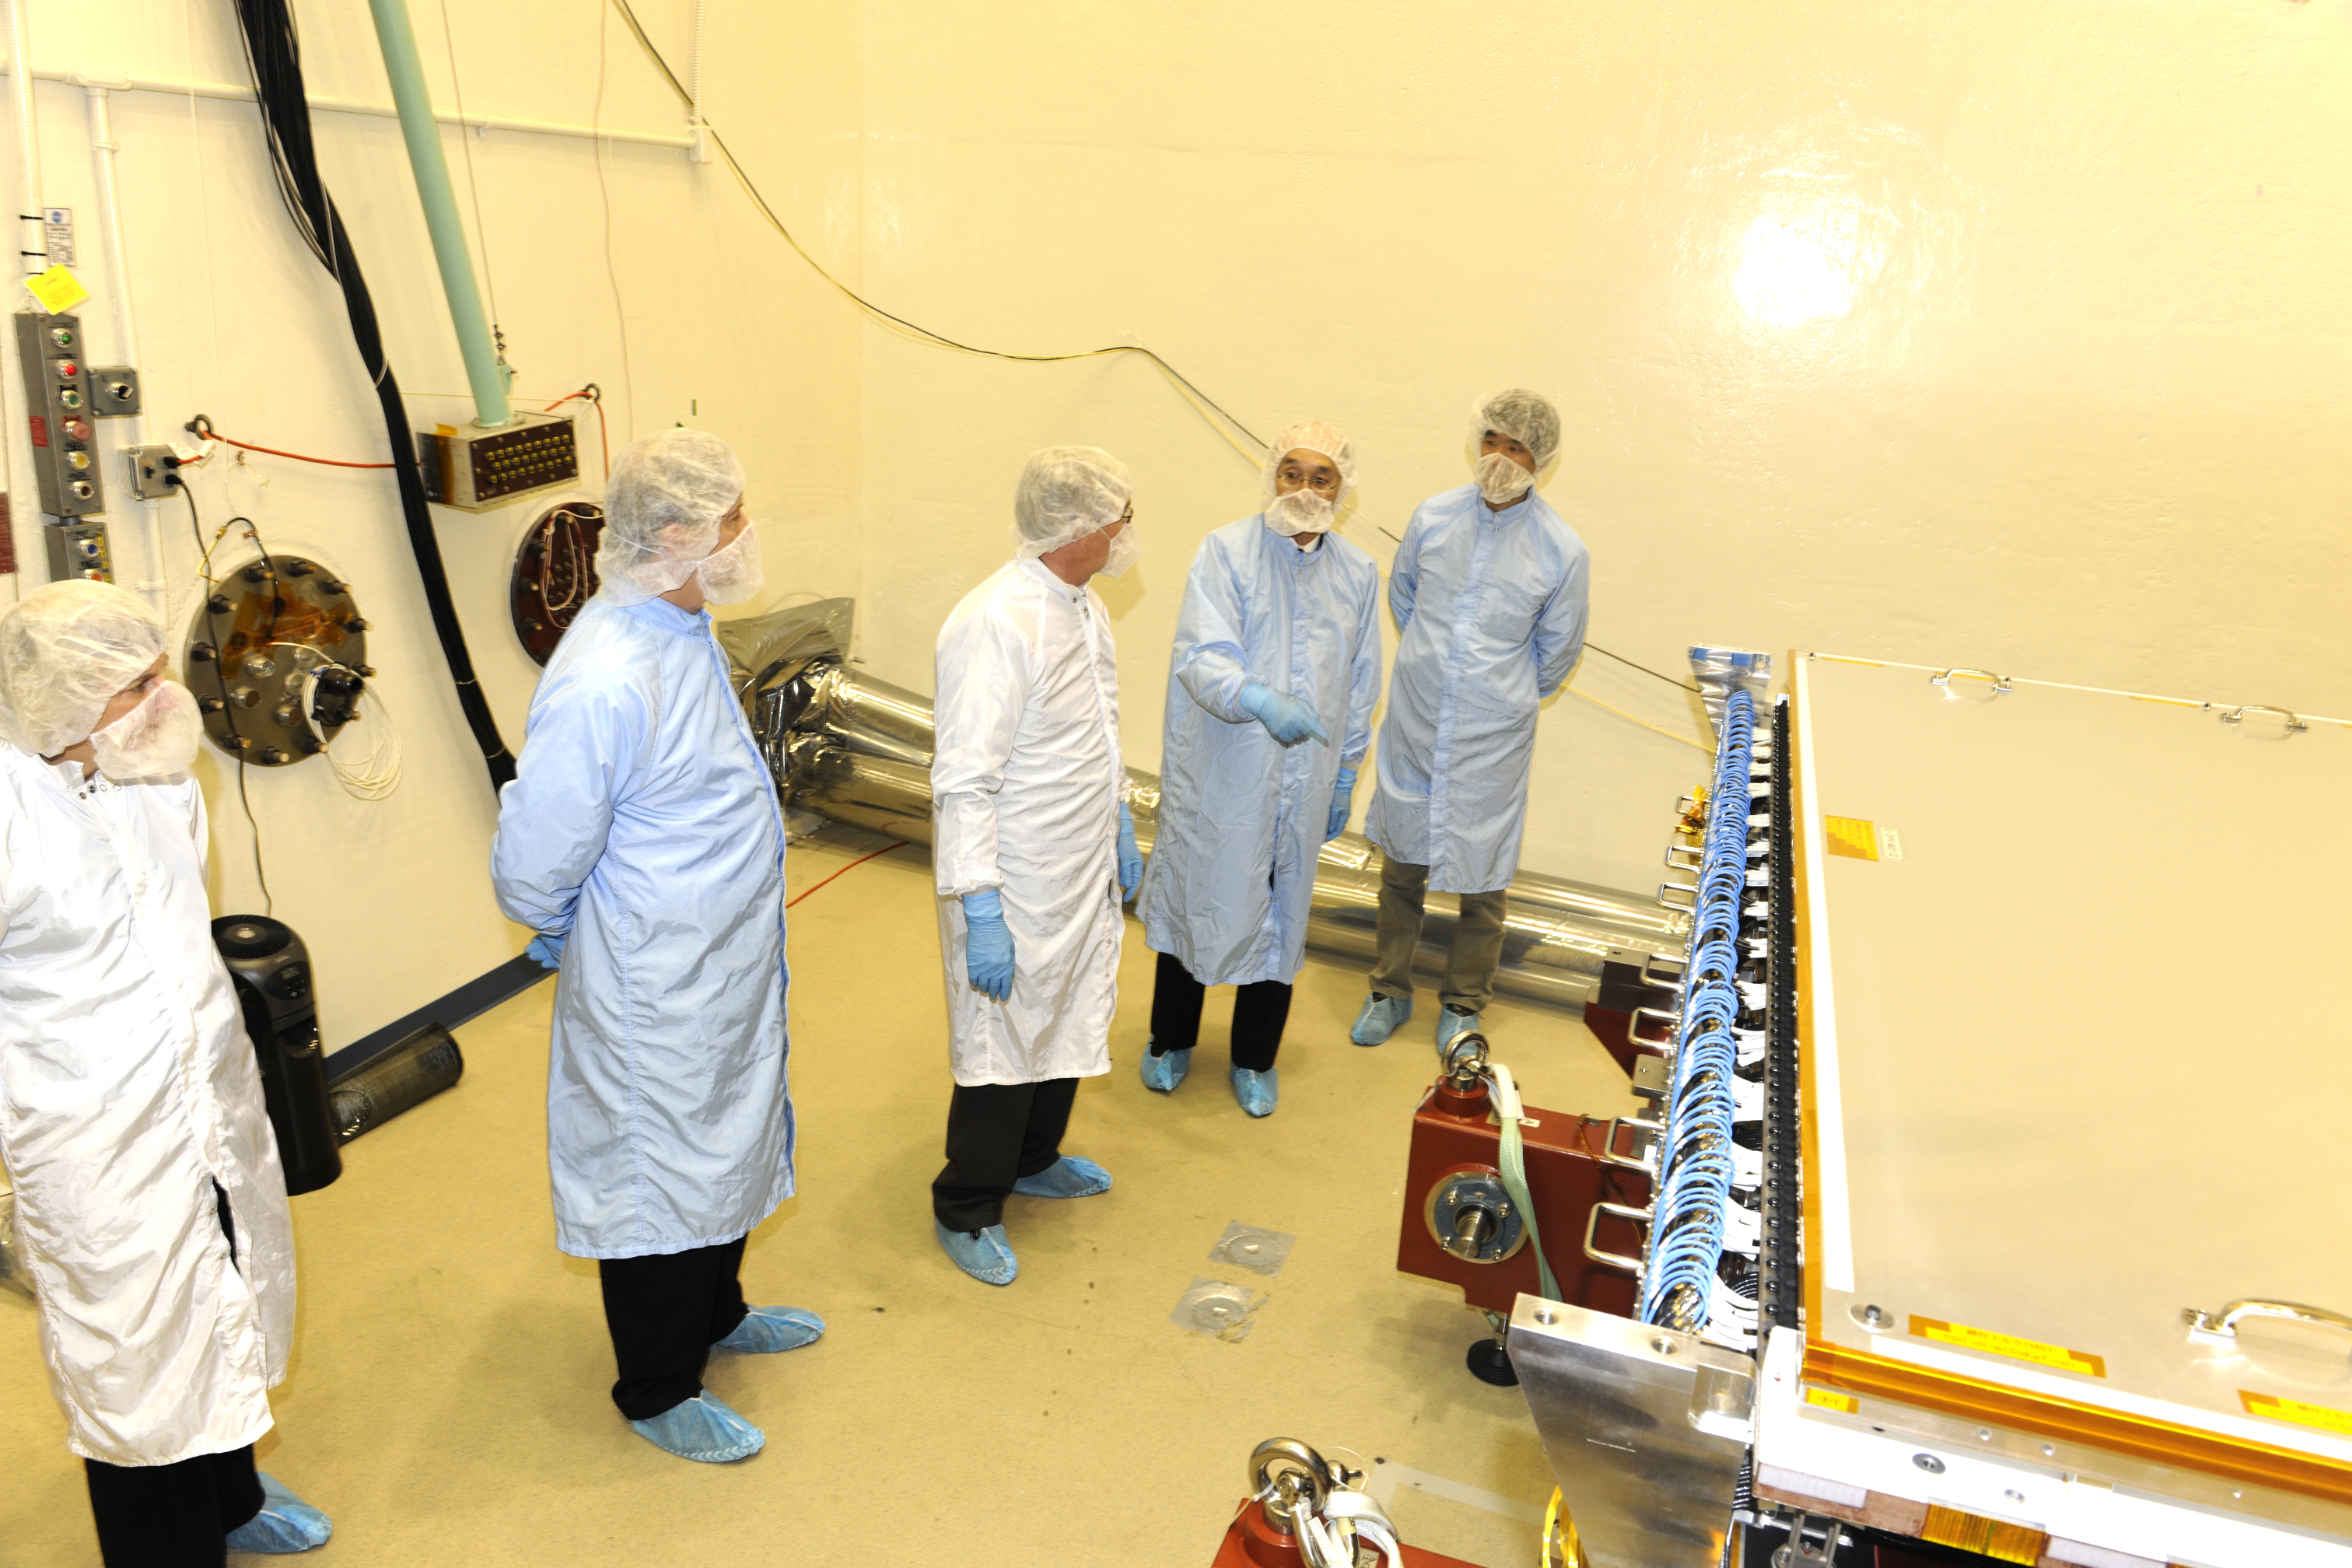 NASA and JAXA scientists in front of the DPR